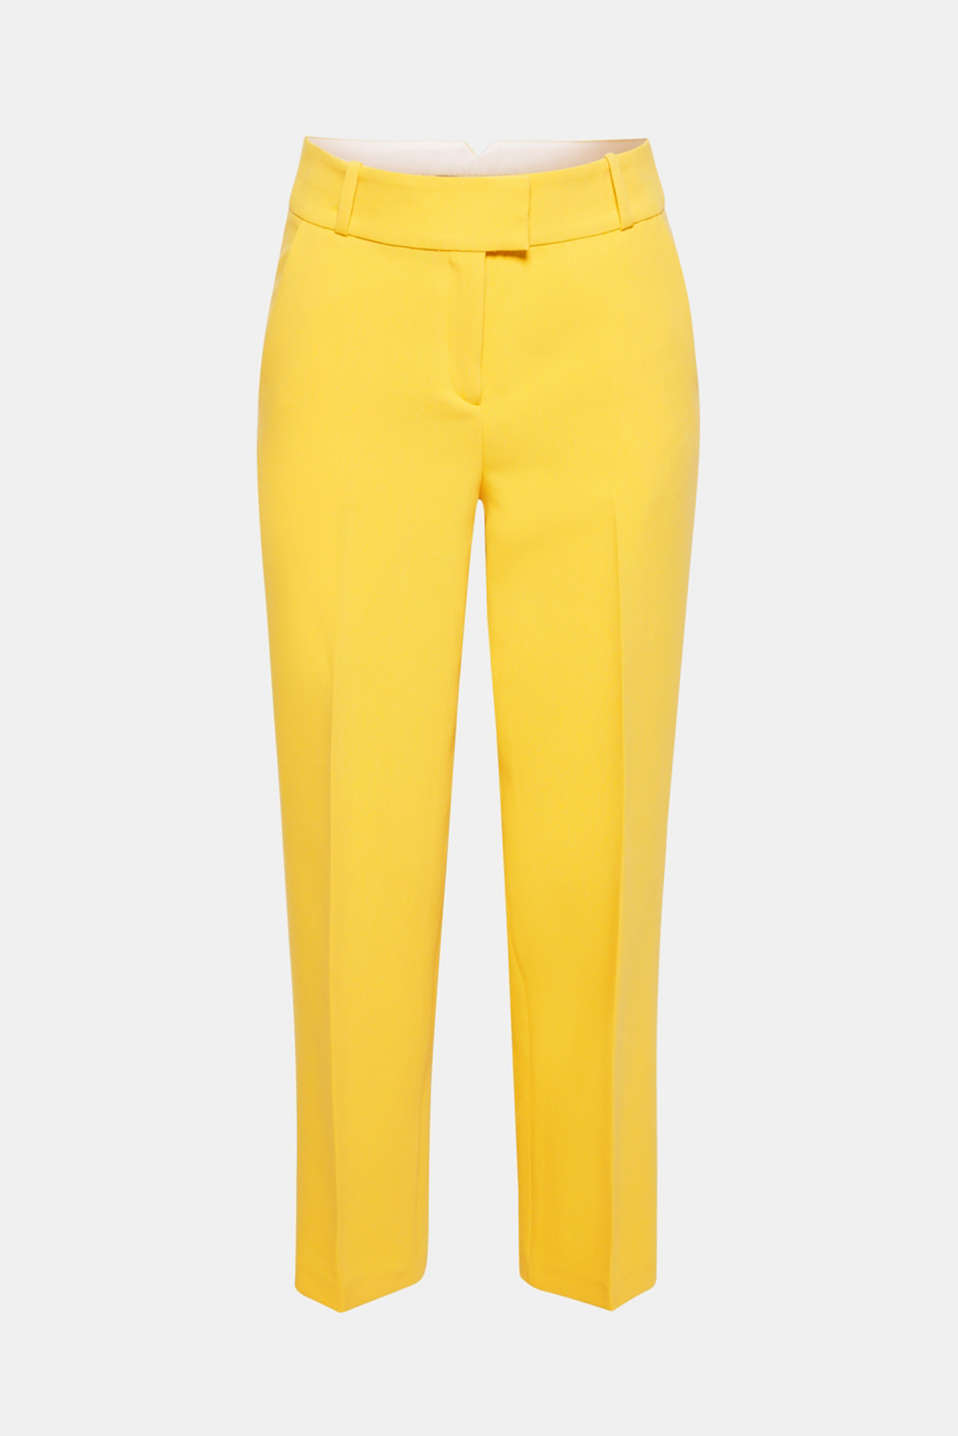 Pants woven, YELLOW, detail image number 6